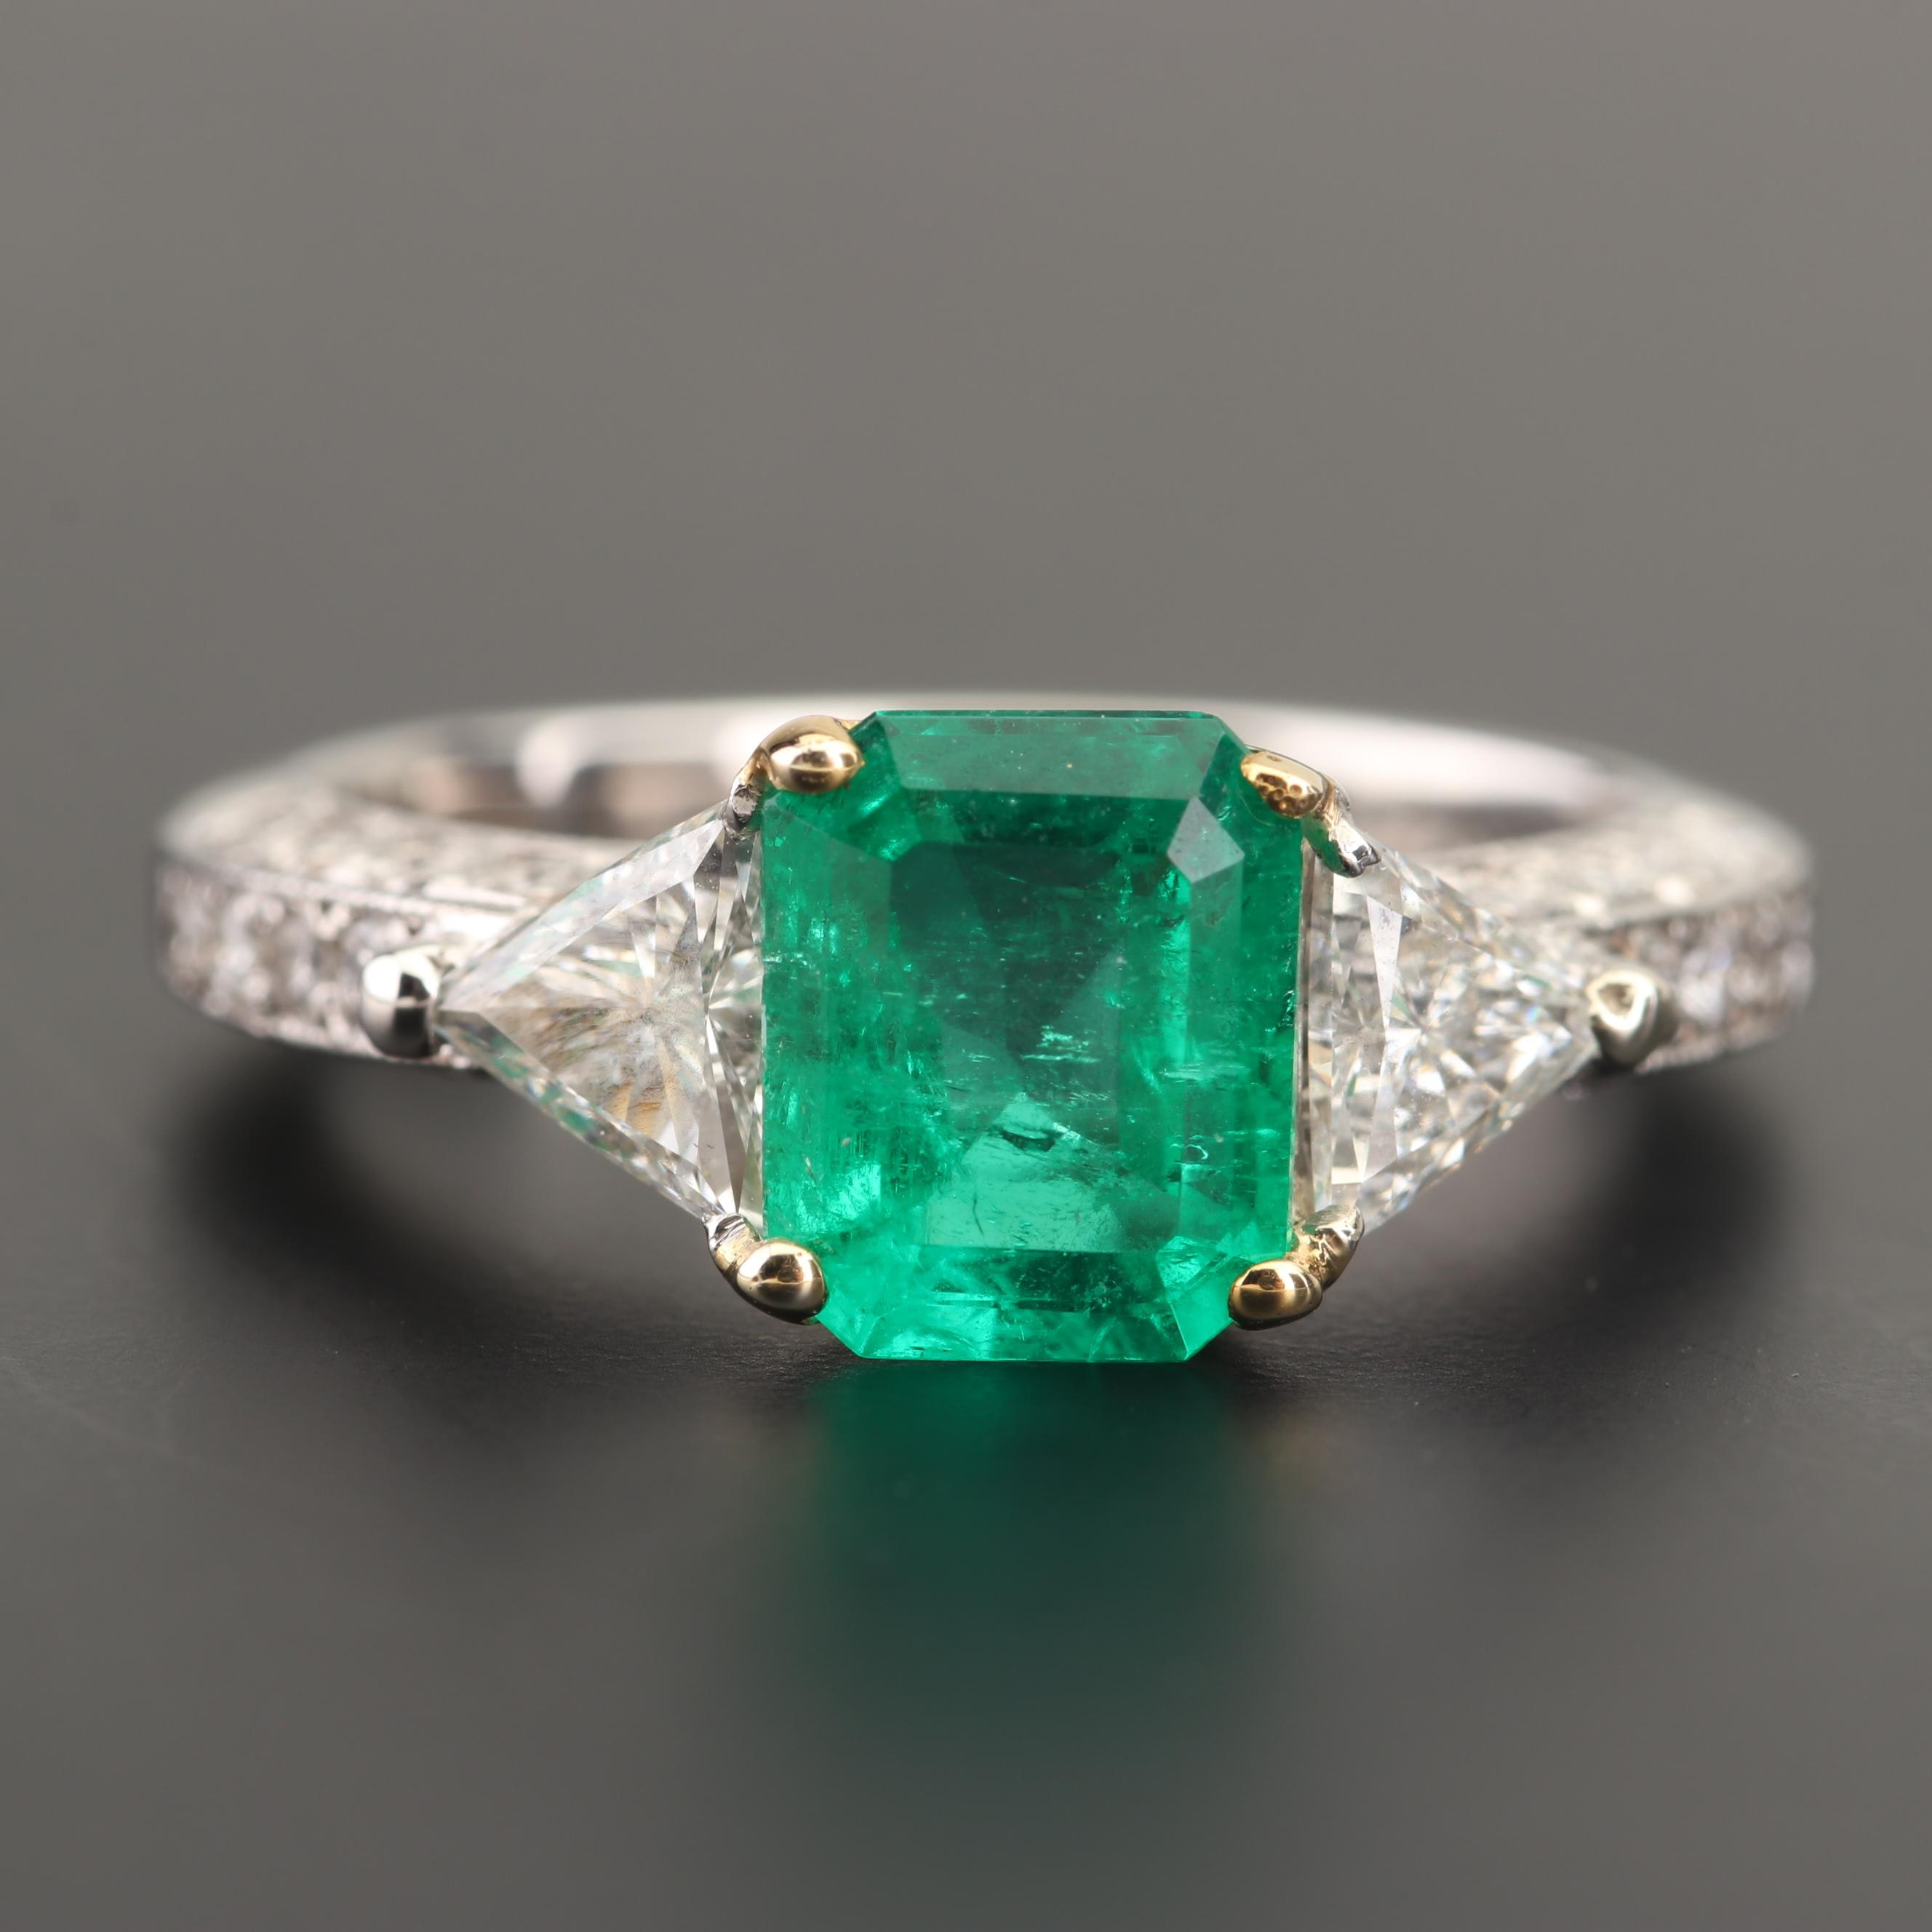 Platinum and 18K Yellow Gold 1.51 CT Emerald and Diamond Ring